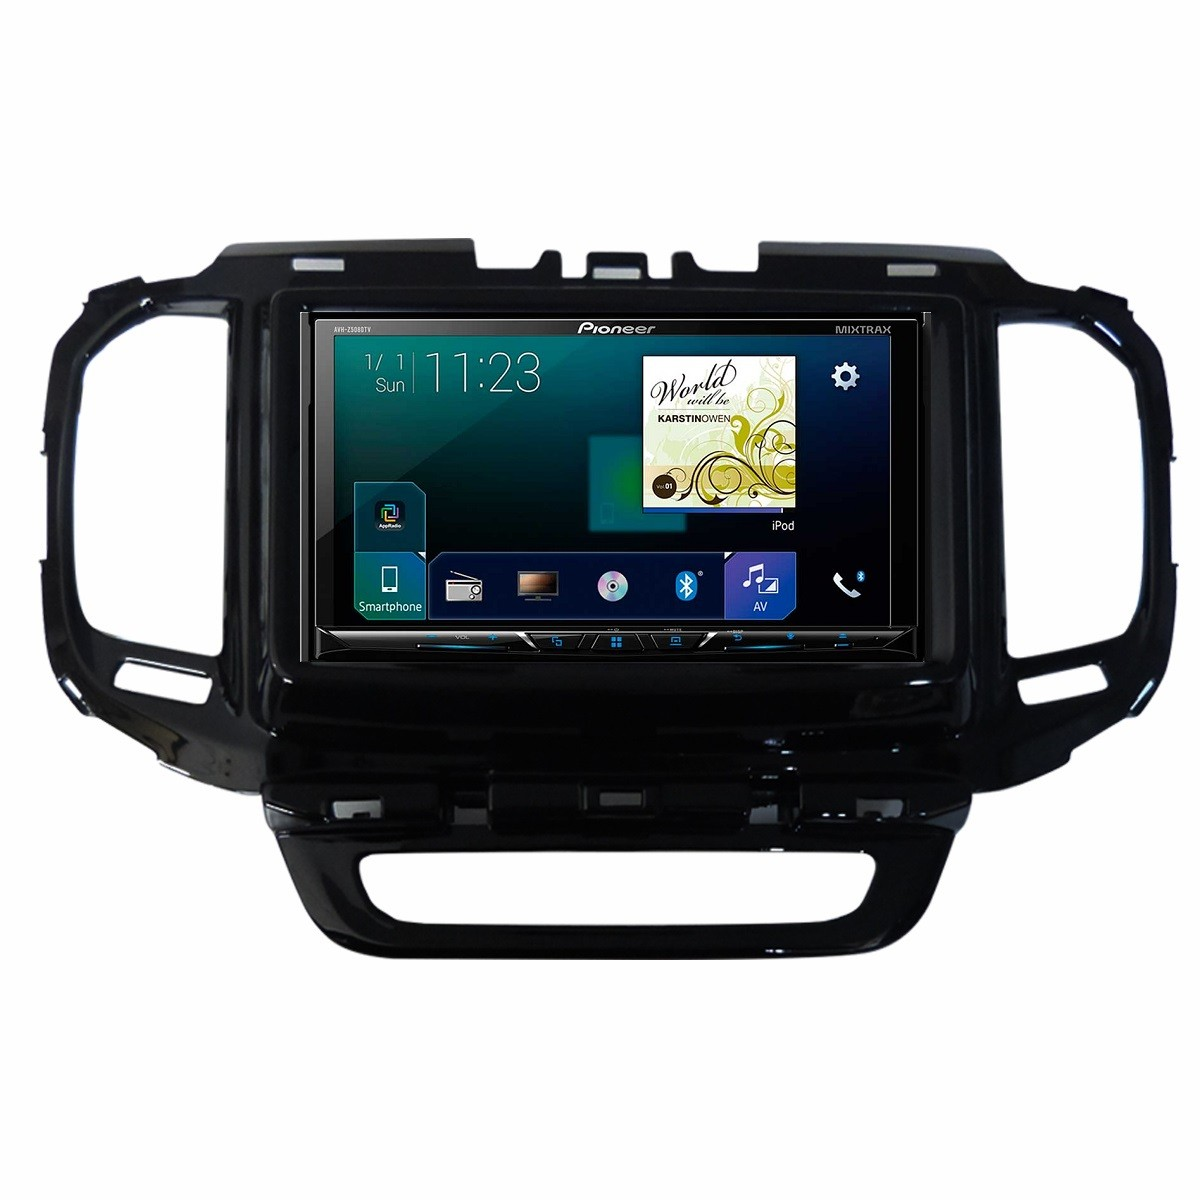 Central Multimidia Fiat Toro - Pioneer AVH-Z5080TV + Interface de Volante + Moldura 2 Din -  Com DVD GPS Wase Mapa Bluetooth MP3 USB Ipod SD Card Câmera de Ré Grátis